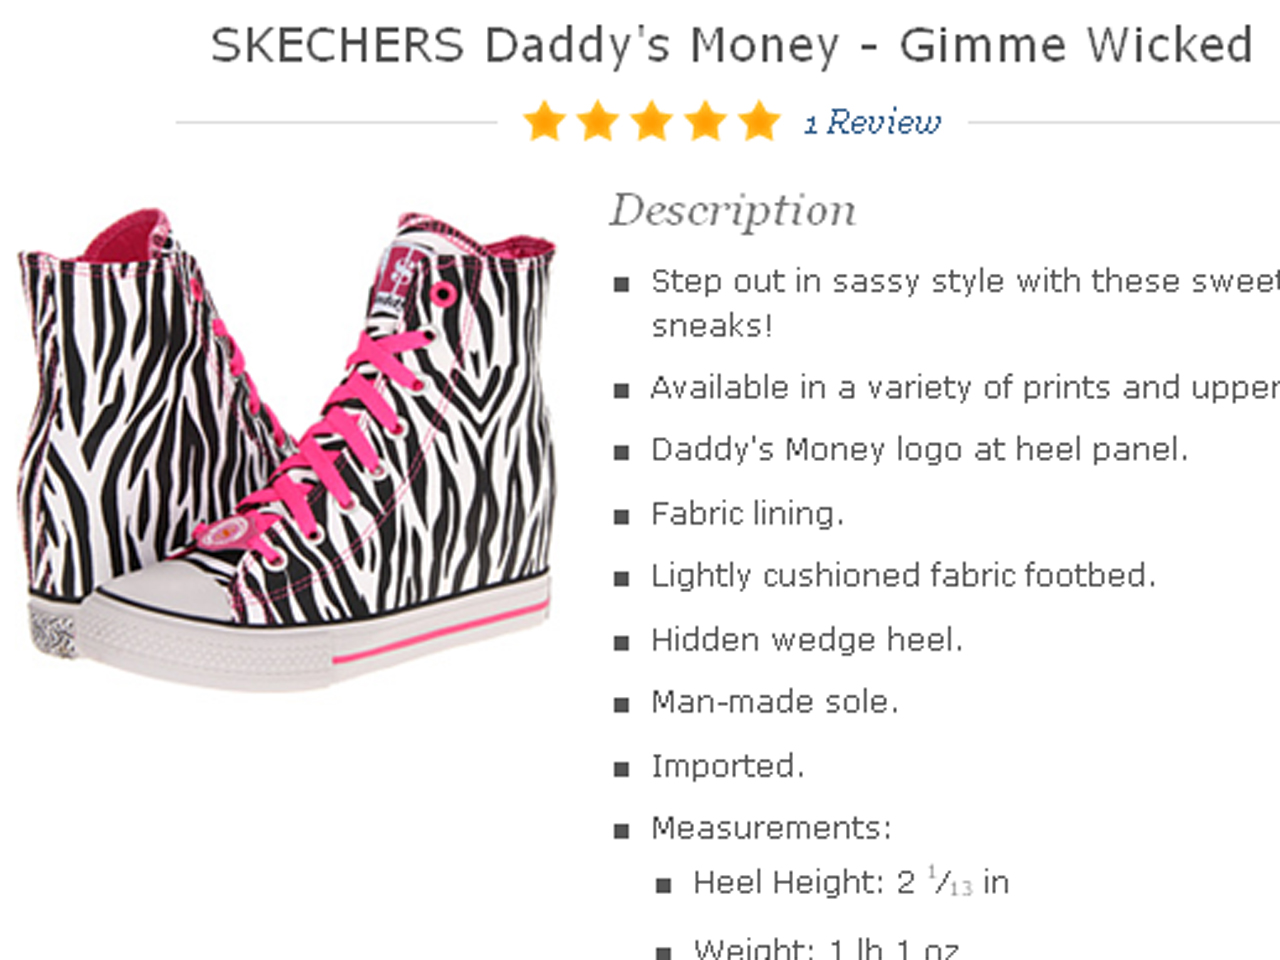 4b1a8bd4a9c7f Moms angry over Skechers' 'Daddy's Money' shoes for tweens